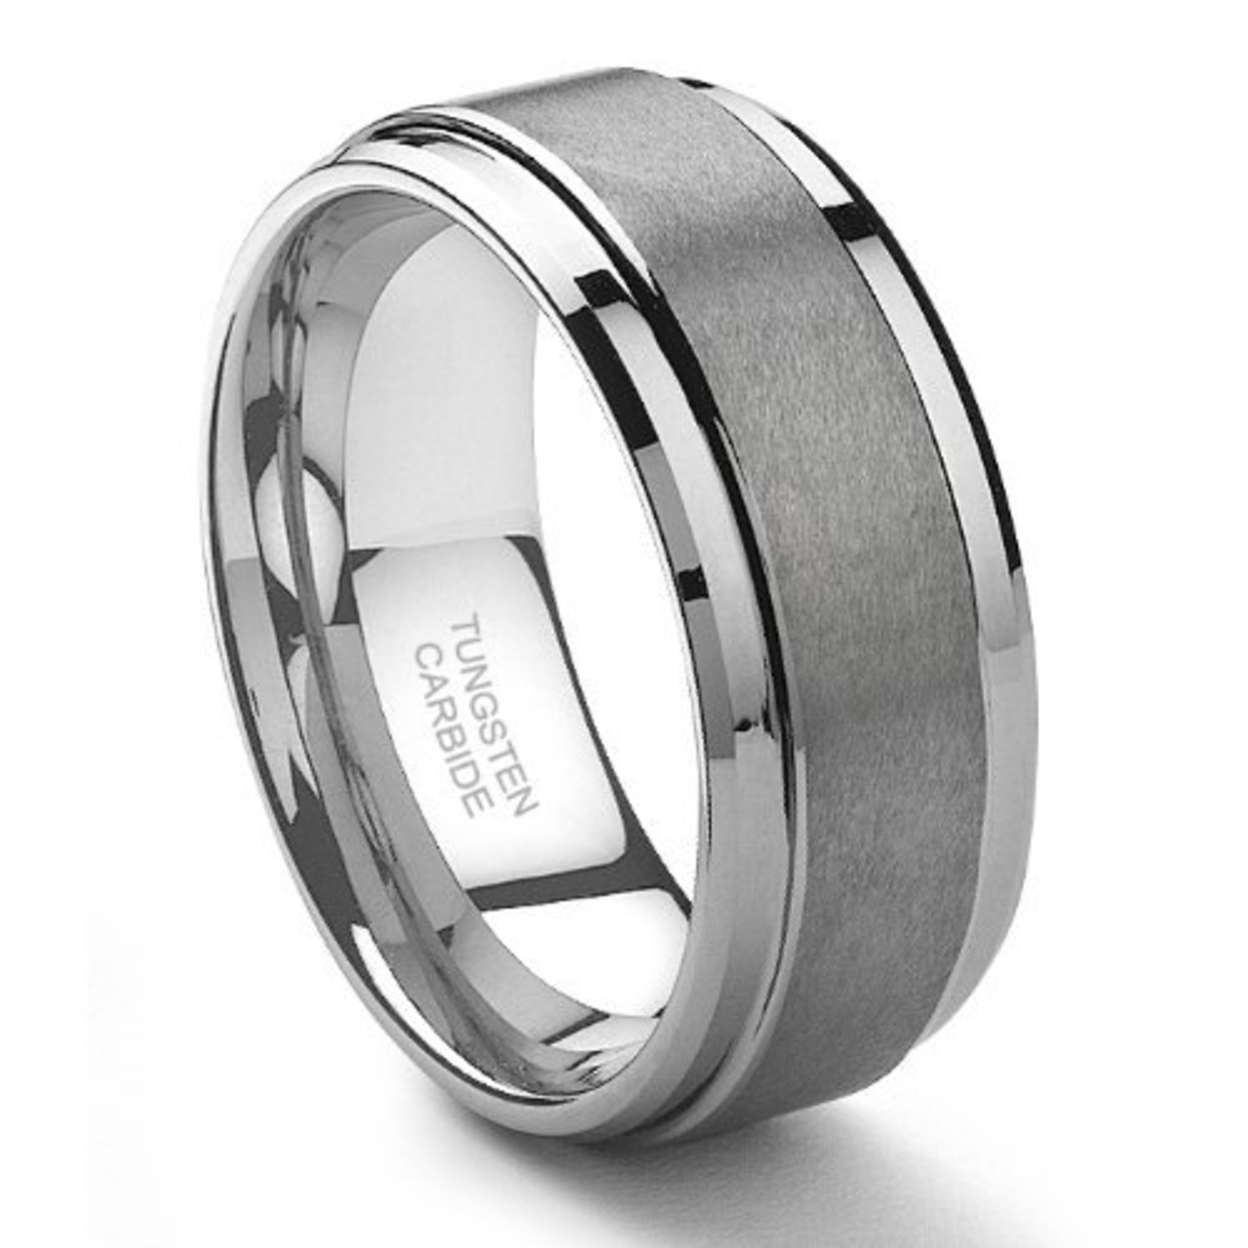 8mm Tungsten Carbide Men 39 S Wedding Band Ring In Comfort Fit And Matte Fin